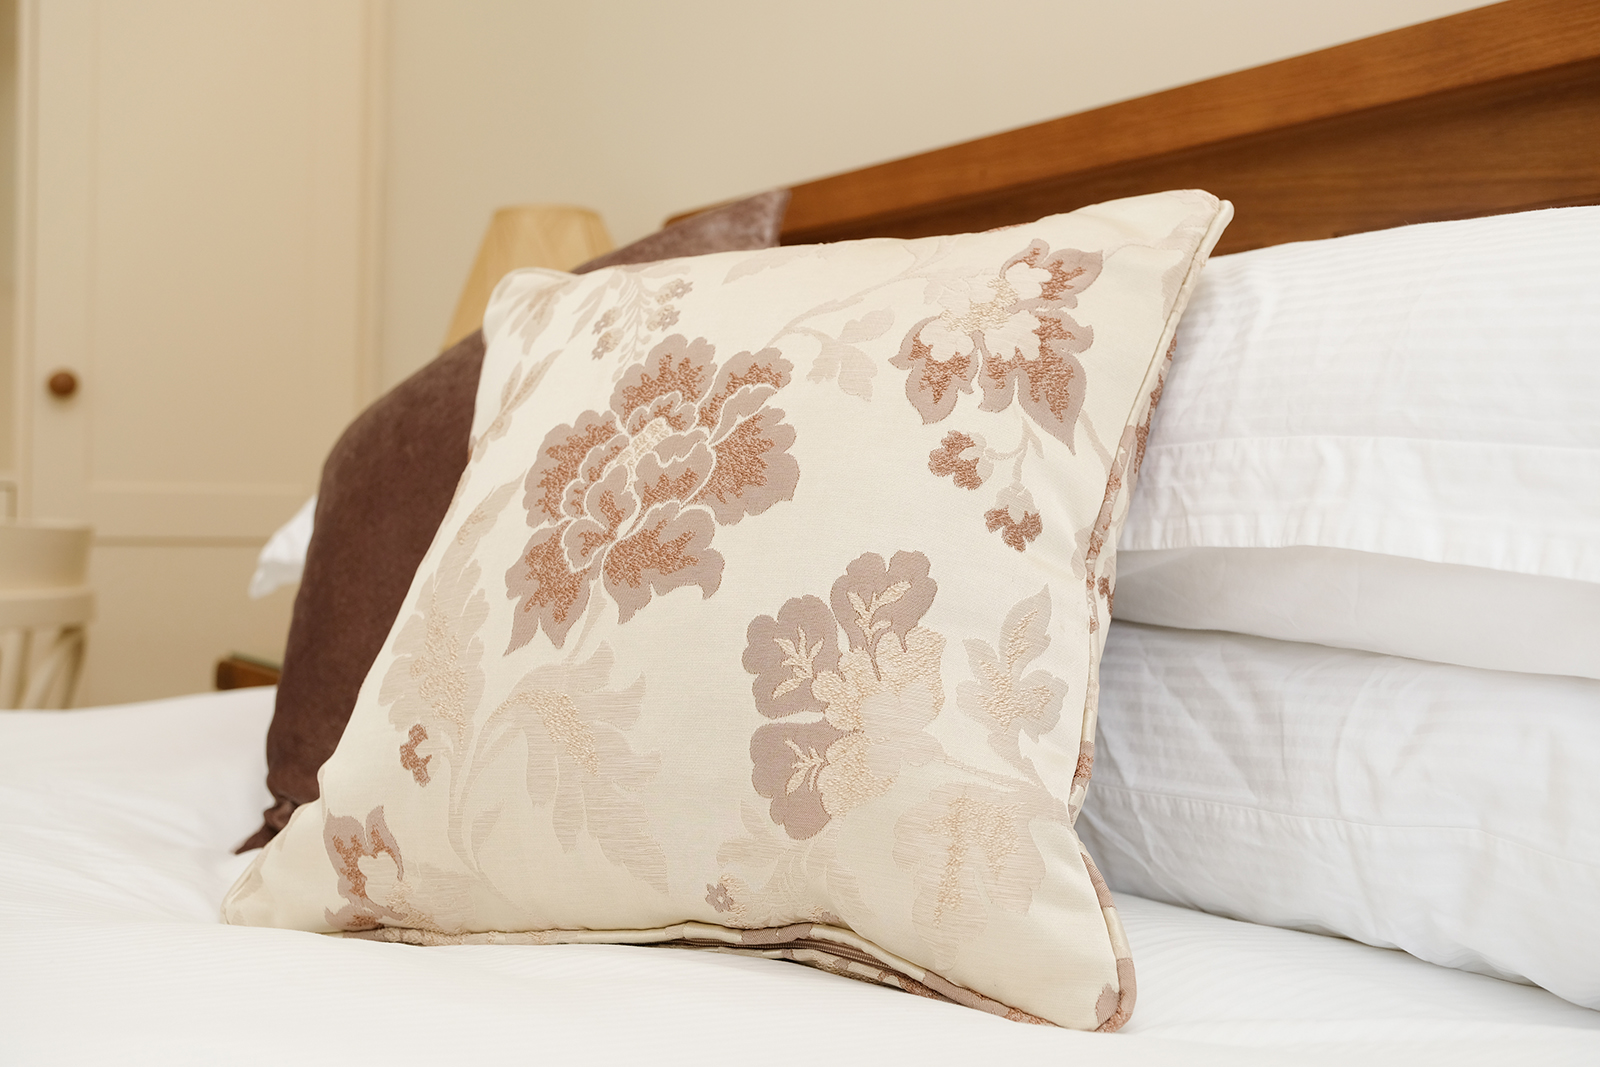 Pillow placed on the middle of the bed at the Garden Suite, photo 1